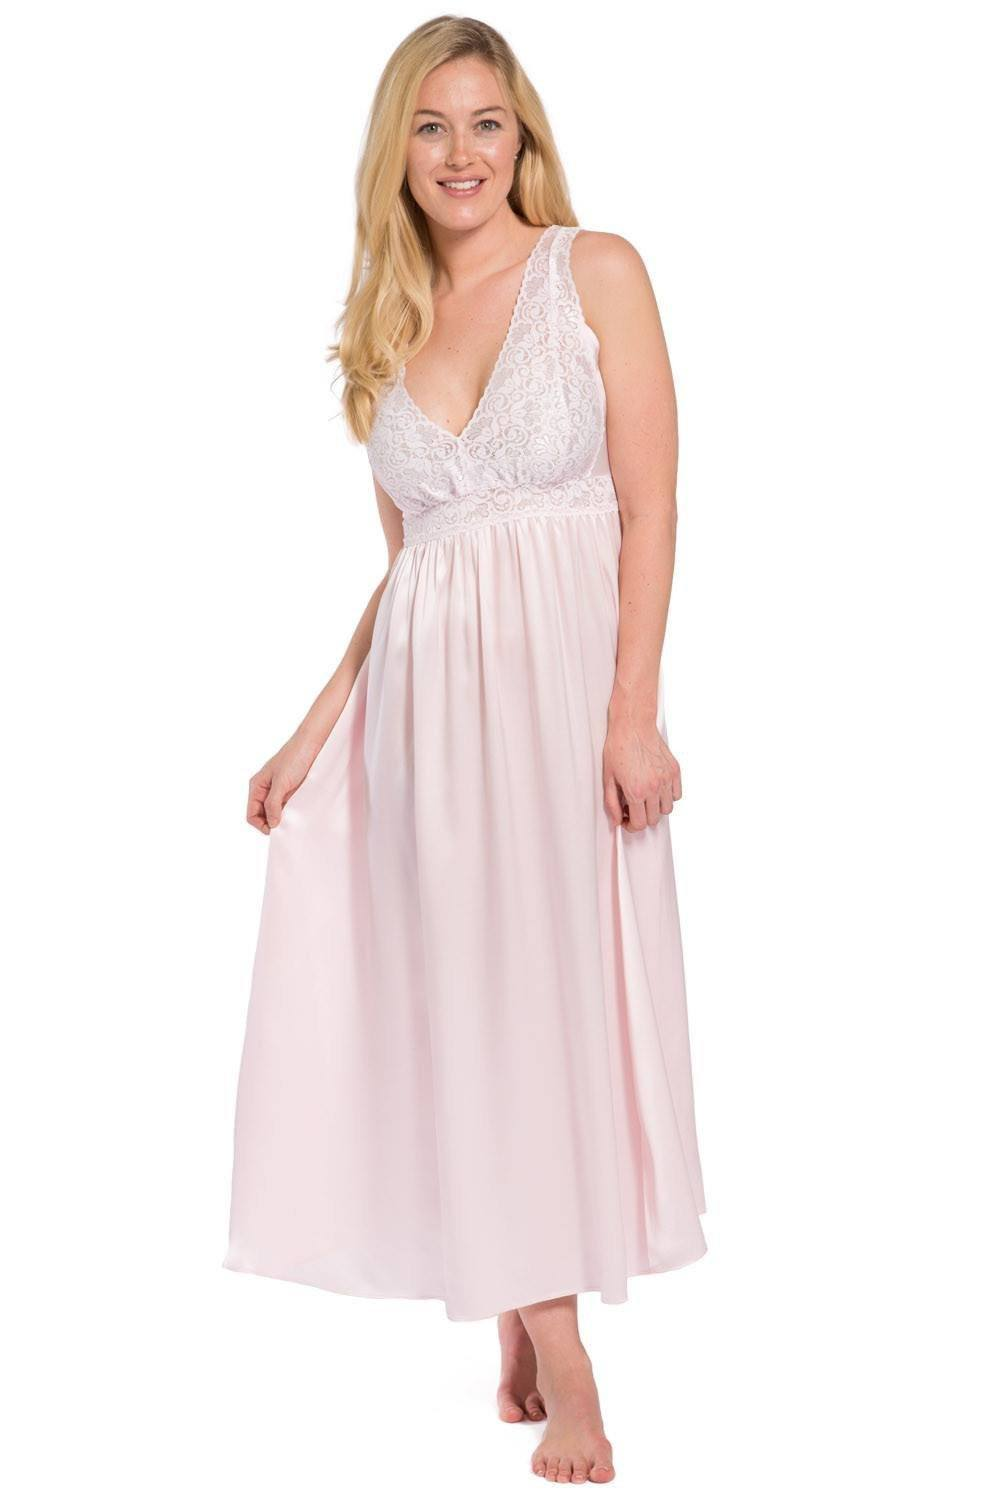 Nightgowns for Women. Sleep in style with Belk's collection of nightgowns for women. Browse nightgowns in short sleeve, sleeveless and long sleeve styles, .